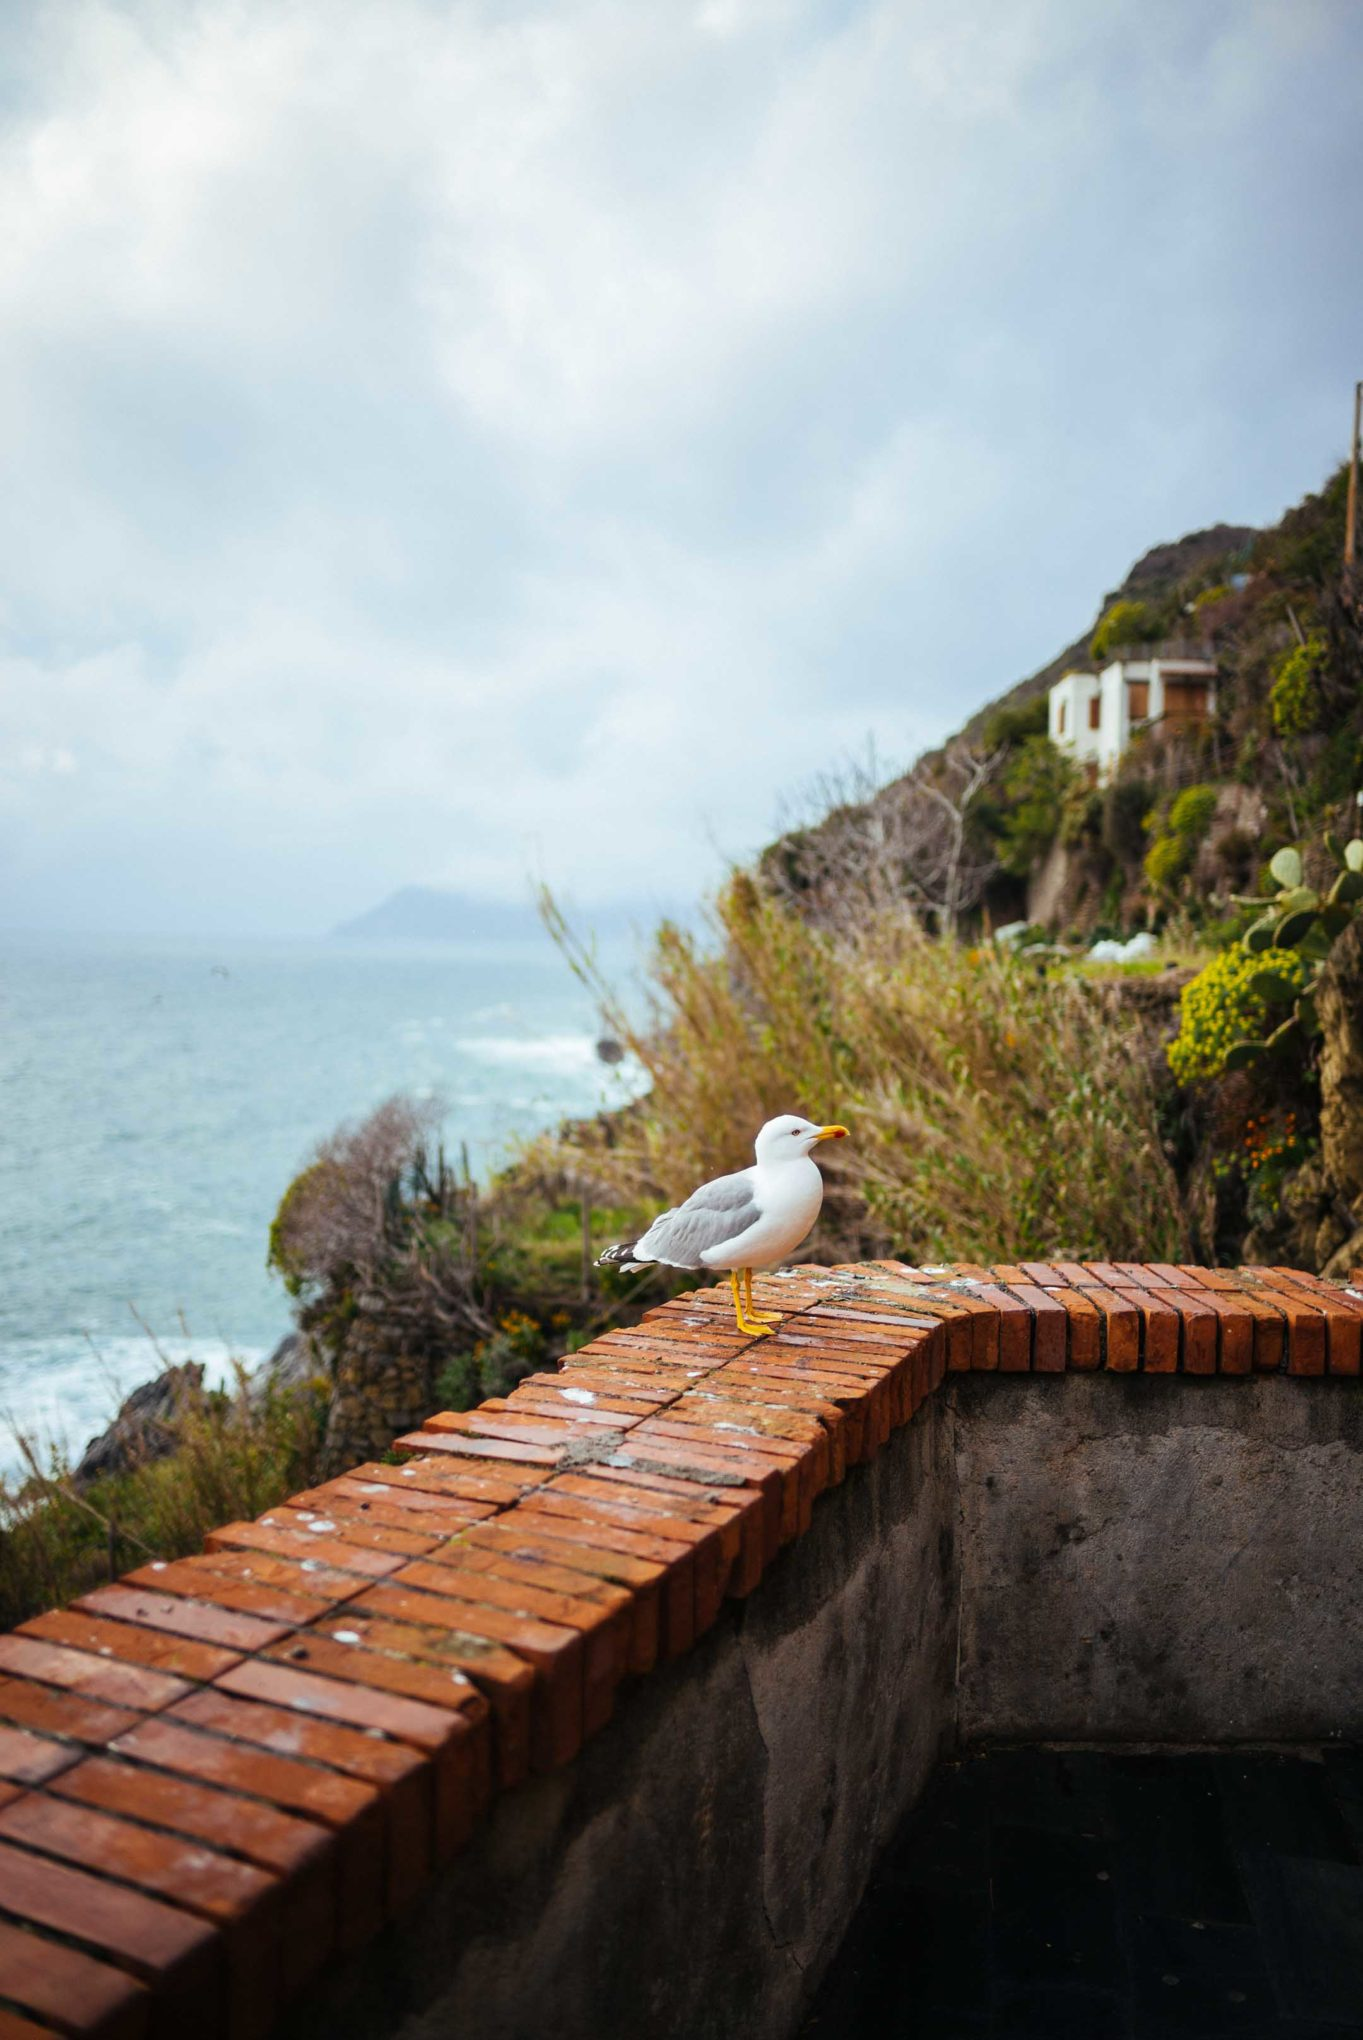 The Taste Edit is sharing some of the best tips for your visit to Cinque Terre. Get beautiful memorable views of the Mediterranean Sea from Ramagore.